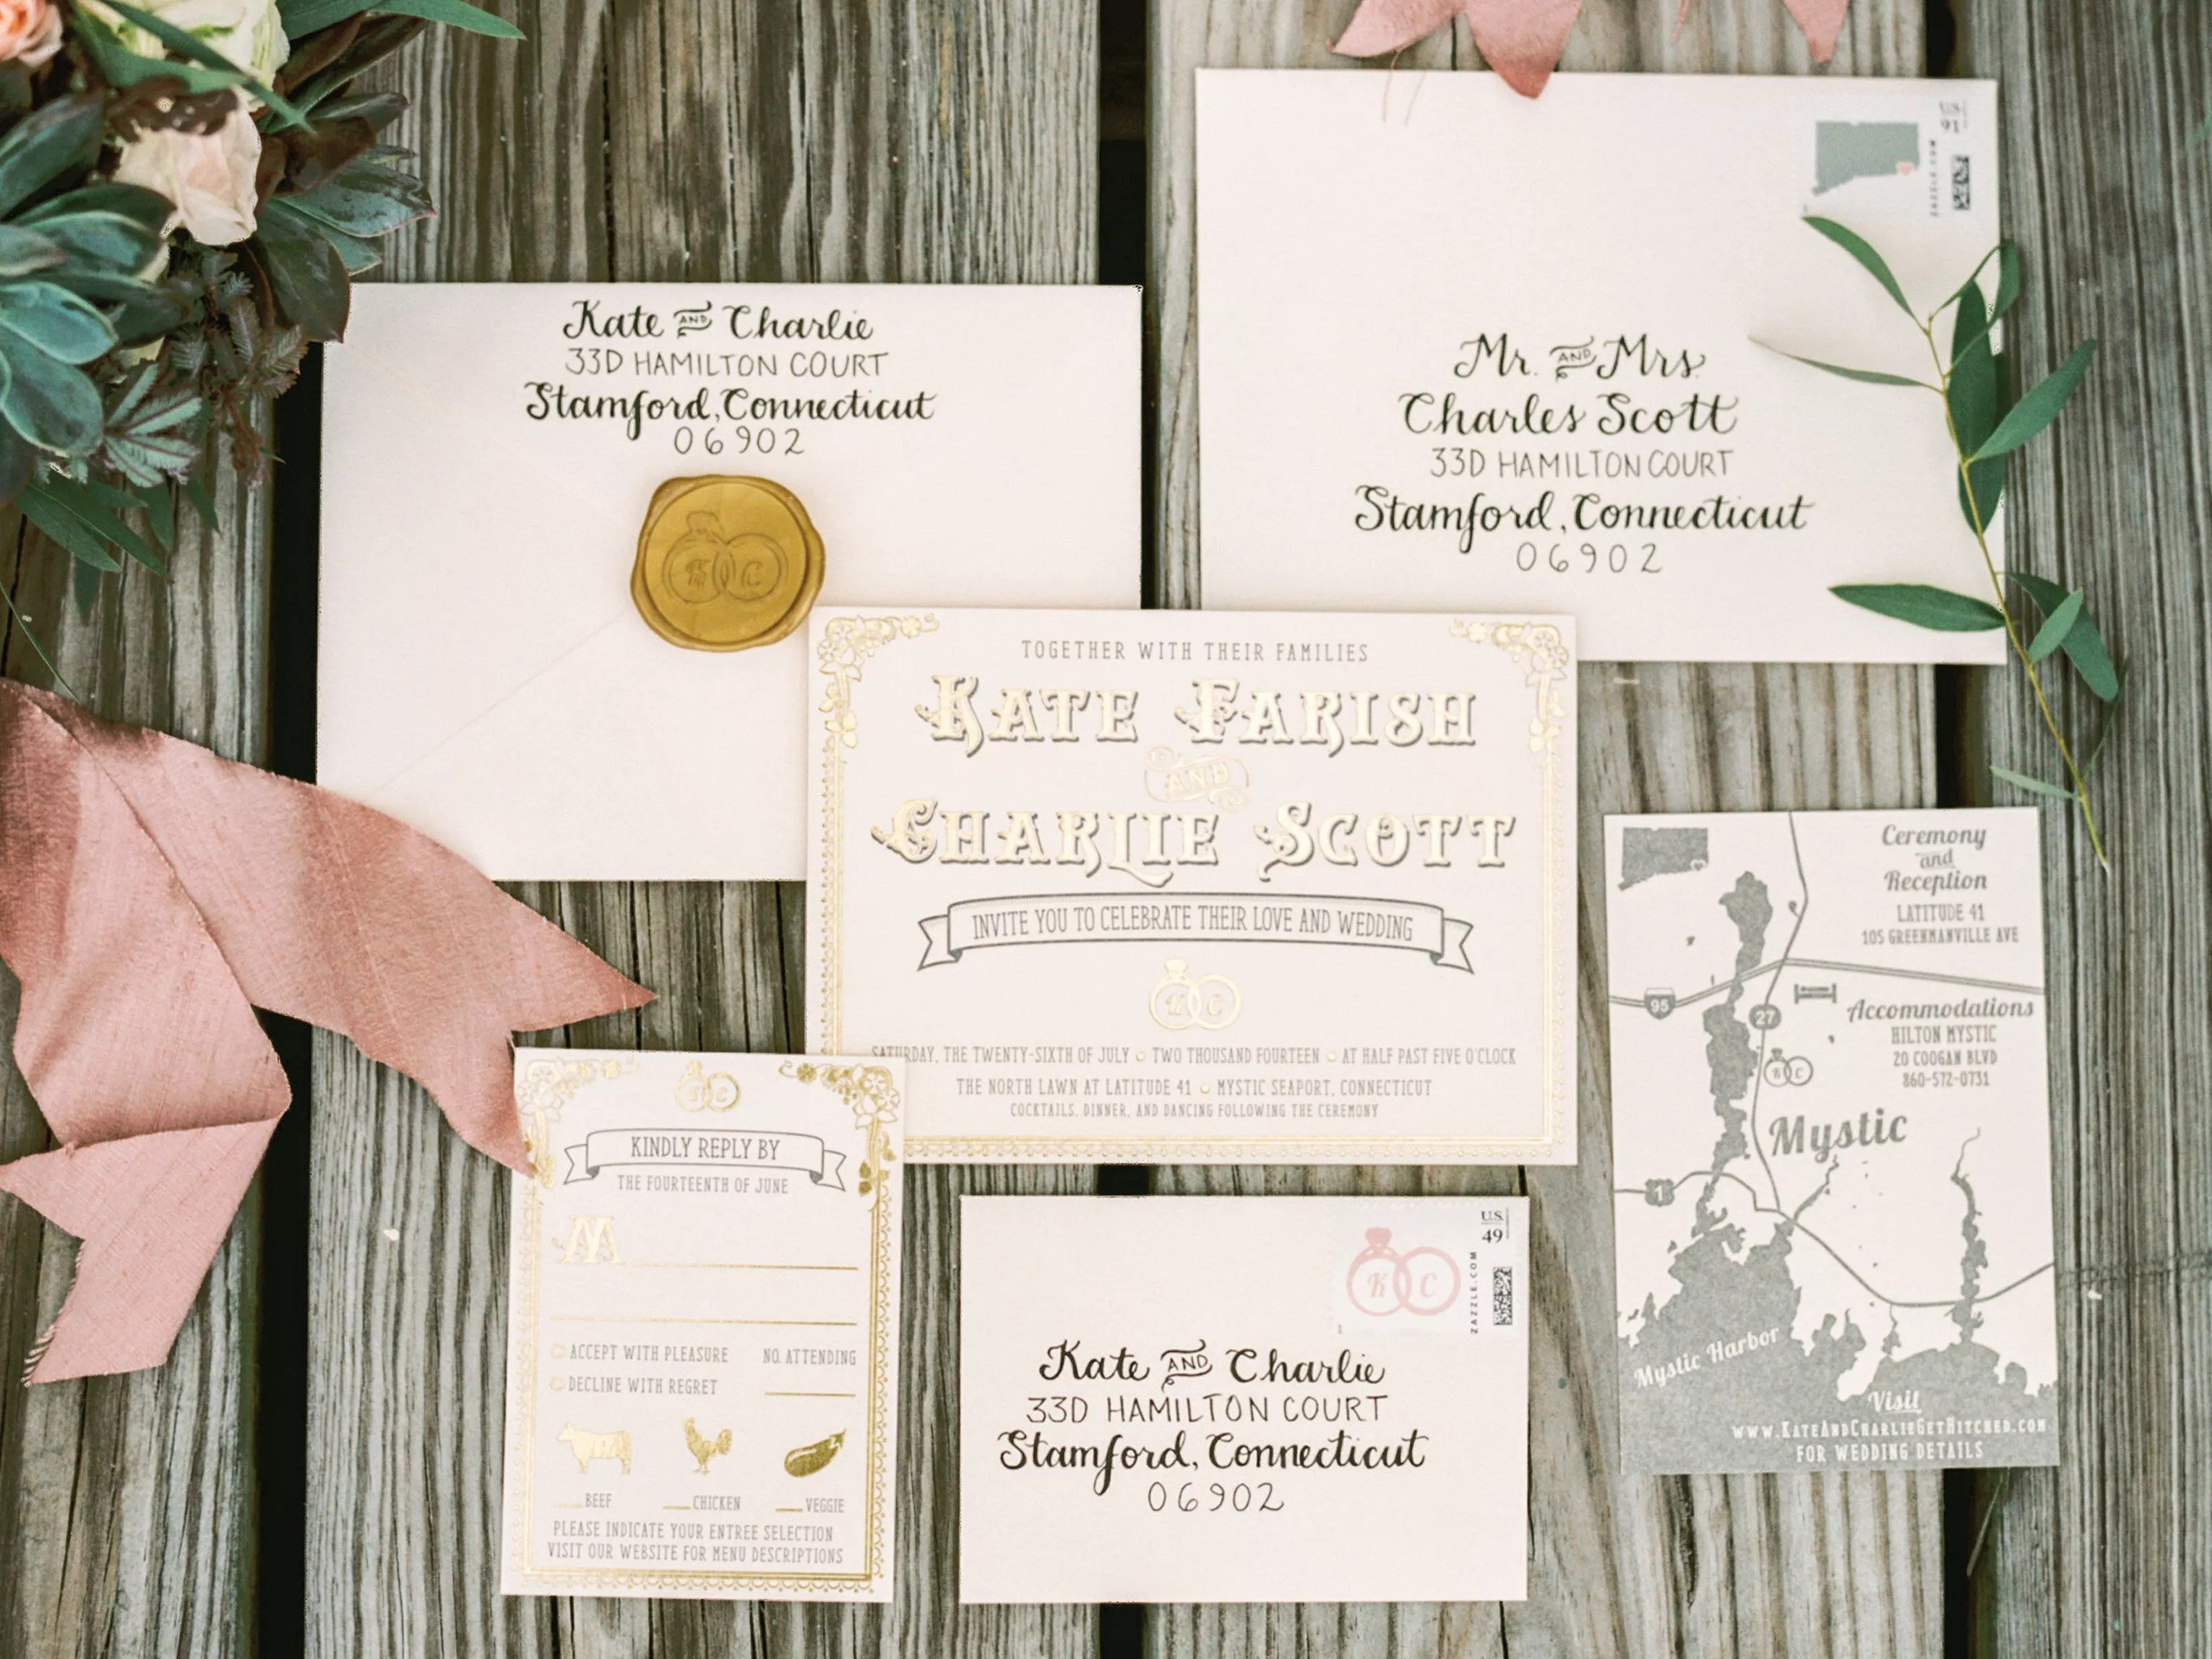 complete wedding invitations checklist wedding invitations examples Wedding Invitations A Complete Checklist Wedding Planning Wedding Invitations Stationery